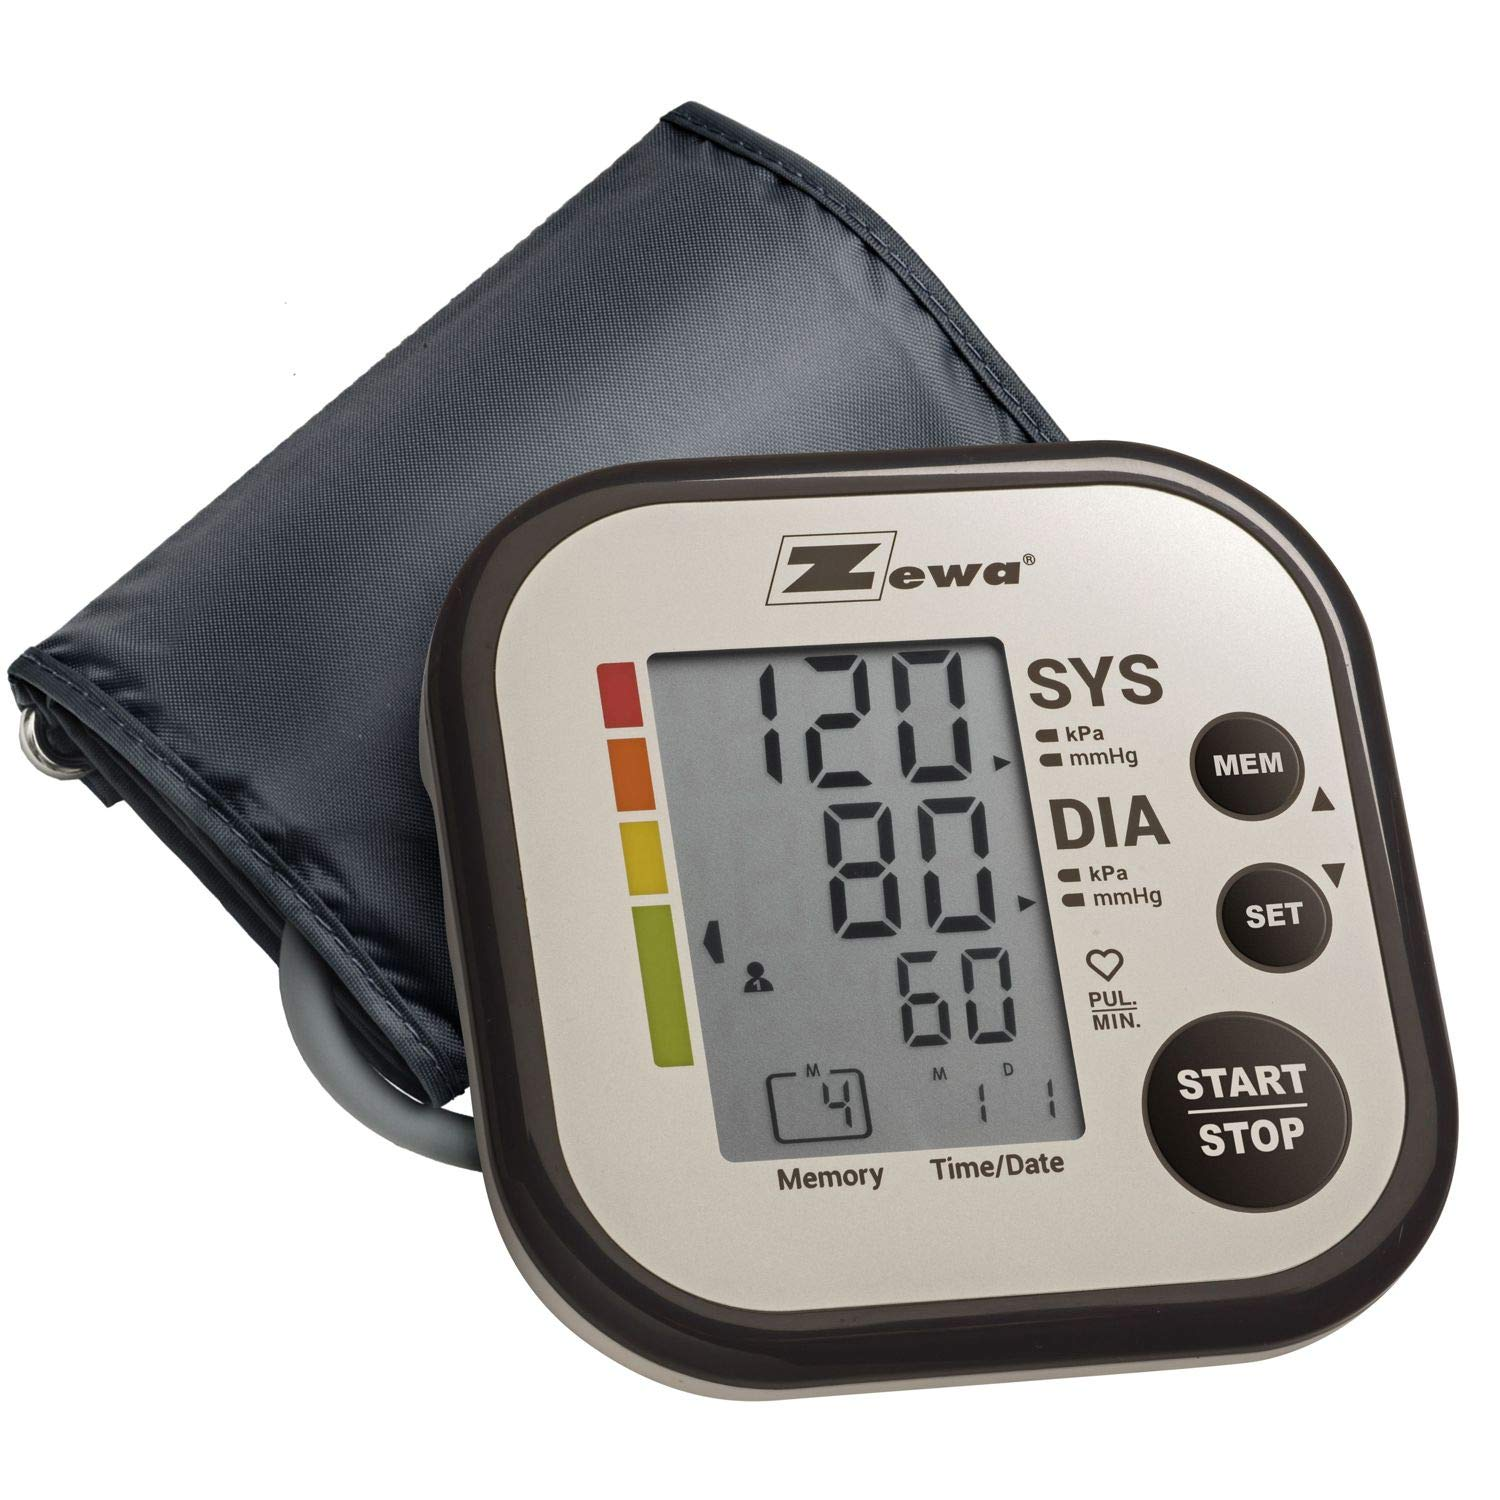 Zewa Upper Arm Blood Pressure Monitor with Two User Mode 120 Reading Memory and Wide Range Cuff That fits Medium to Large arms 8.7 – 16.5